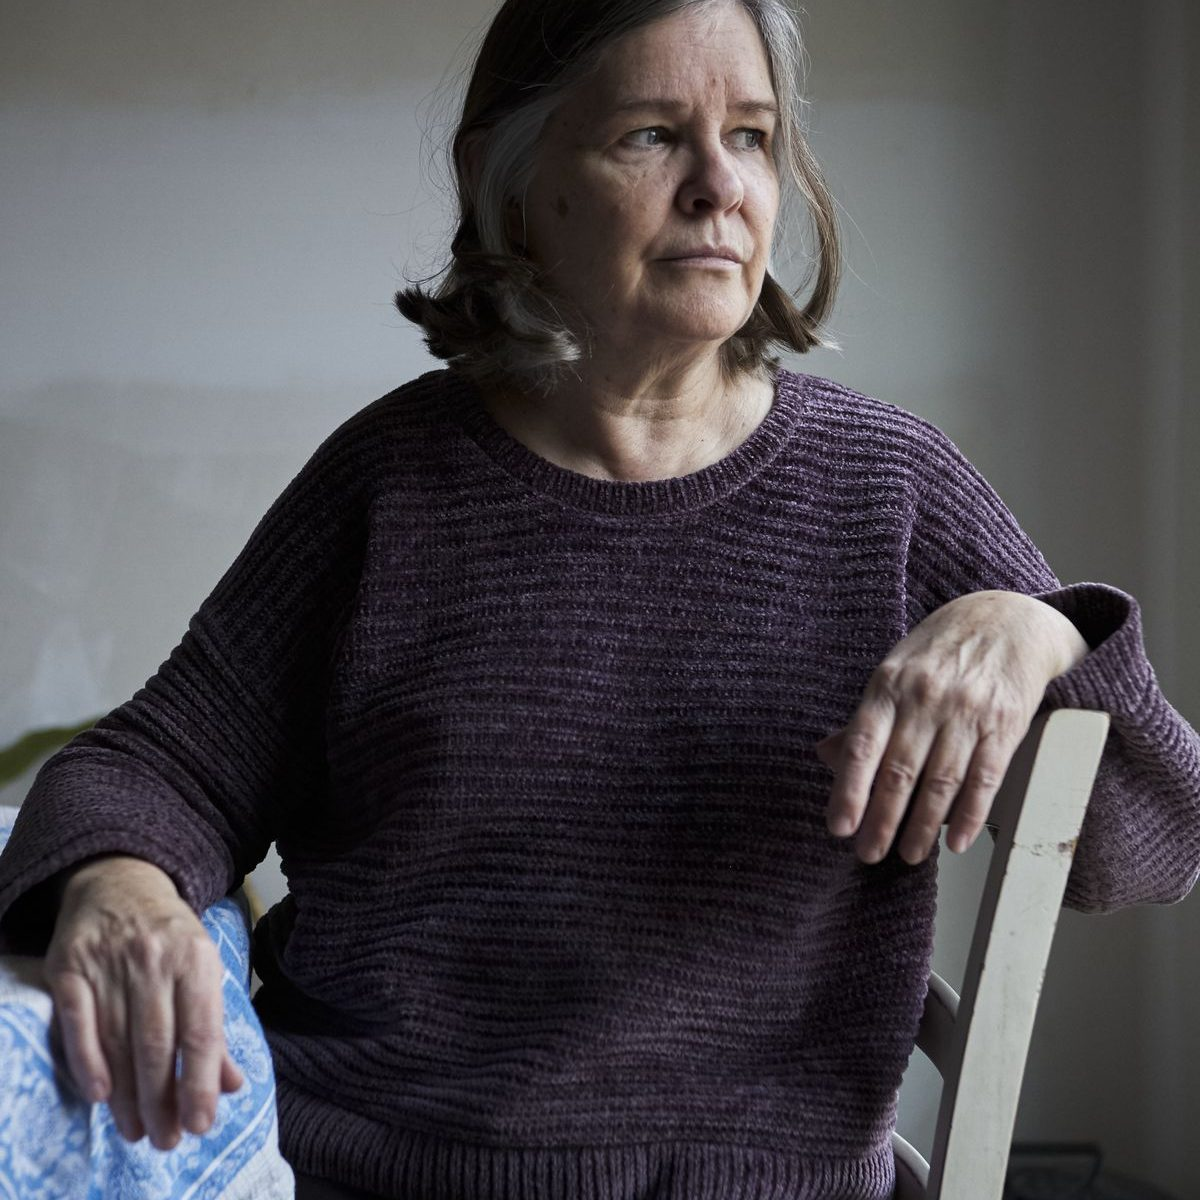 Her son died after insurers resisted covering drug rehab. Now she's taking them to court.